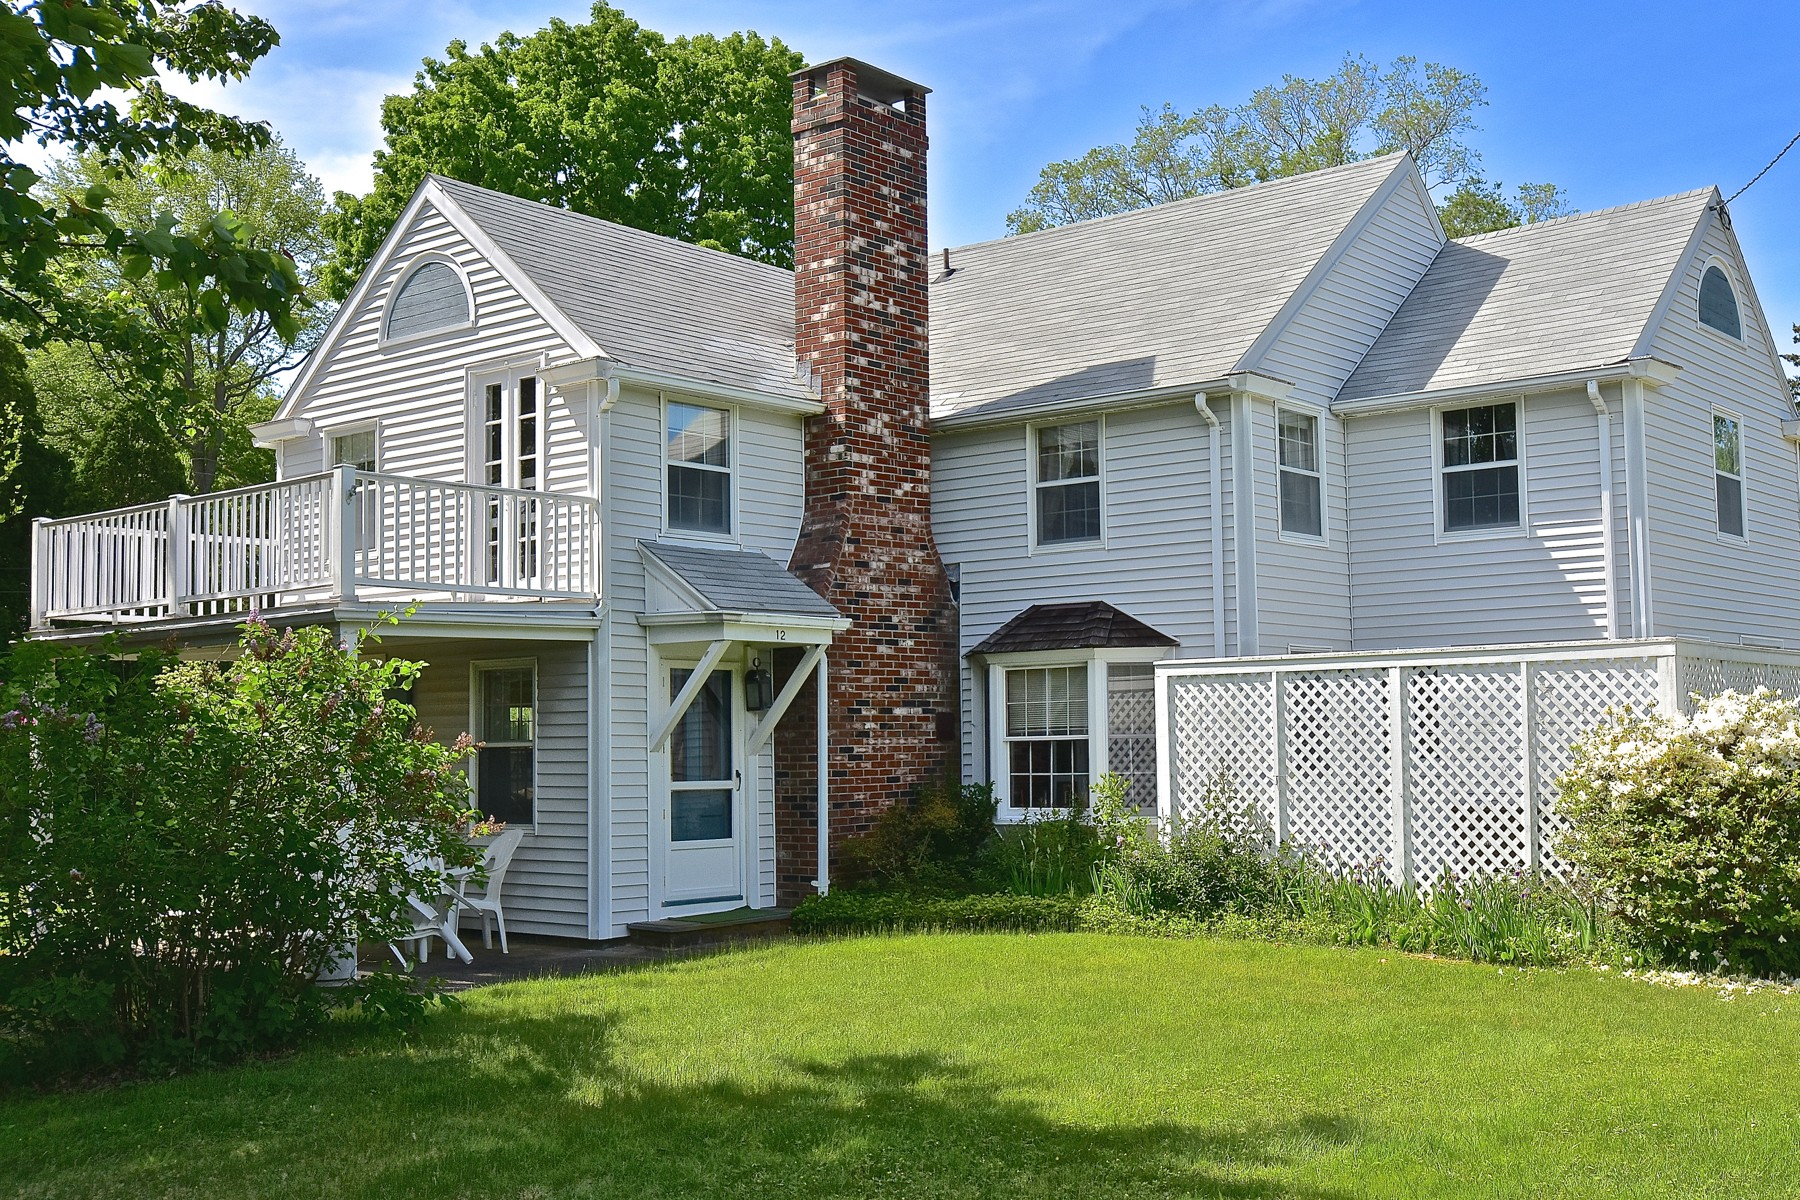 Single Family Home for Sale at Charming Old Black Point Home 12 Great Wight Way East Lyme, Connecticut 06357 United States